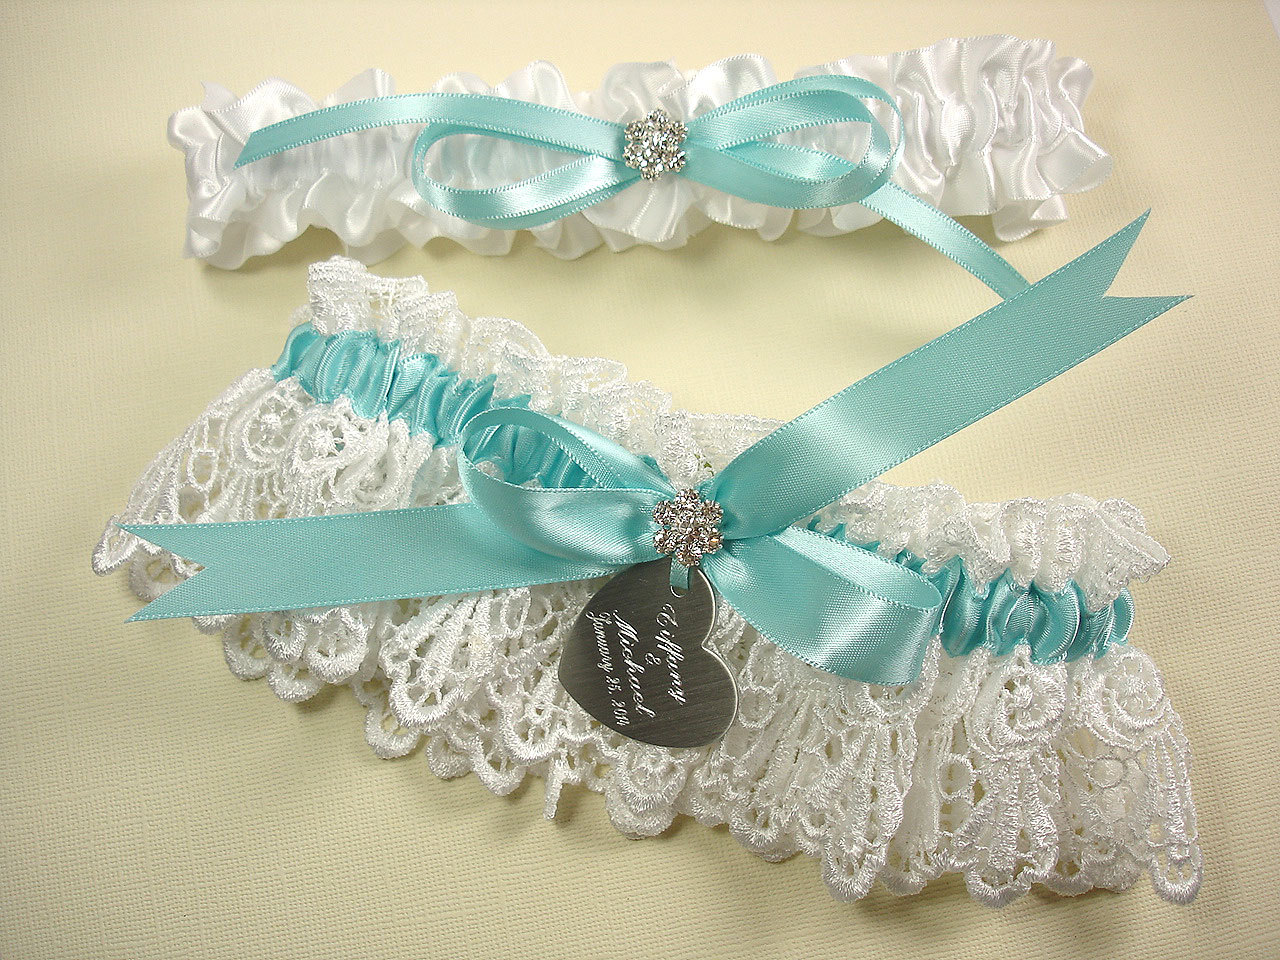 Personalized Wedding Garter Set In Robin's Egg Blue And